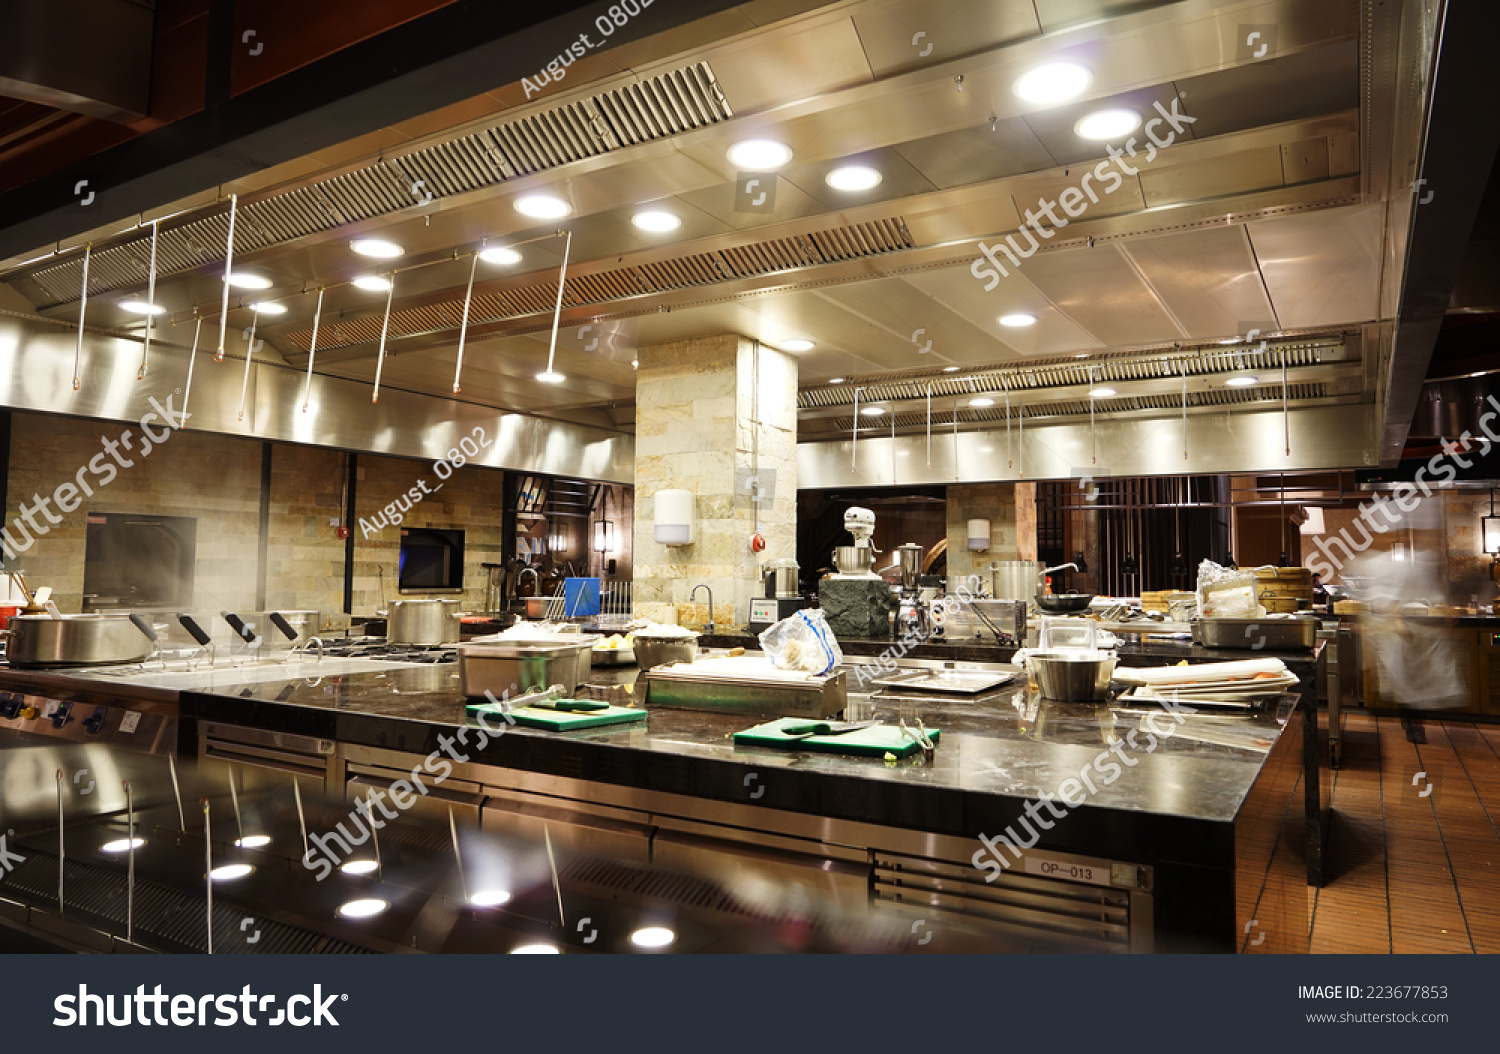 A modern kitchen in a hotel or restaurant fotka 223677853 for V kitchen restaurant